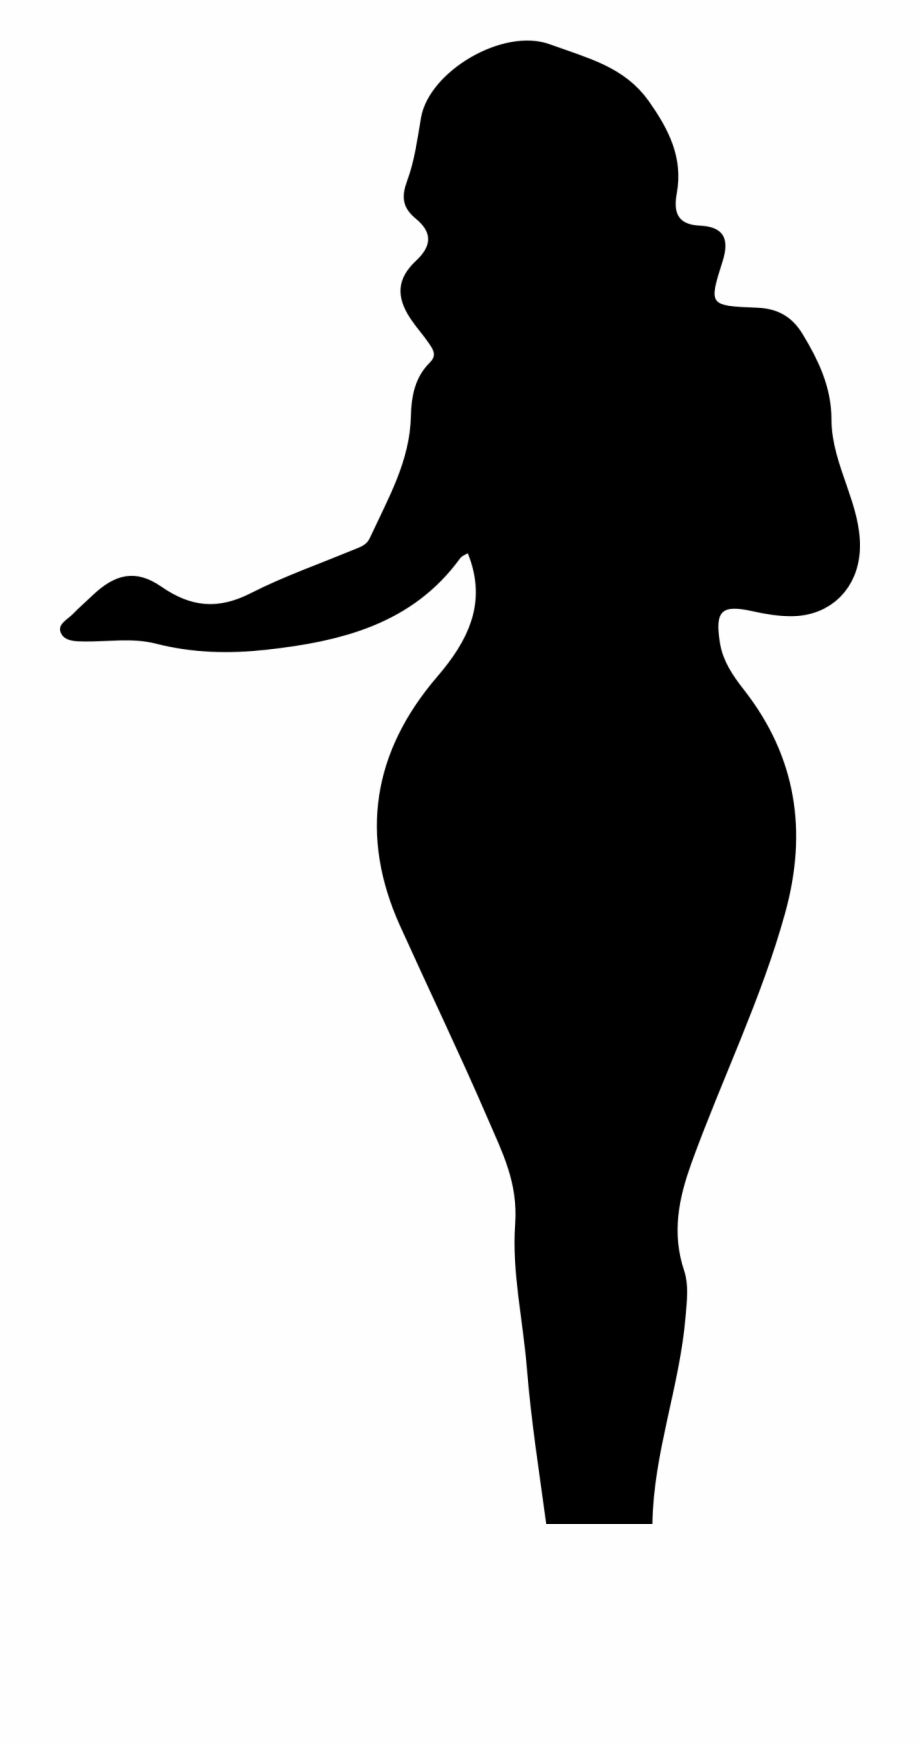 Free Black Woman Silhouette Images, Download Free Clip Art.